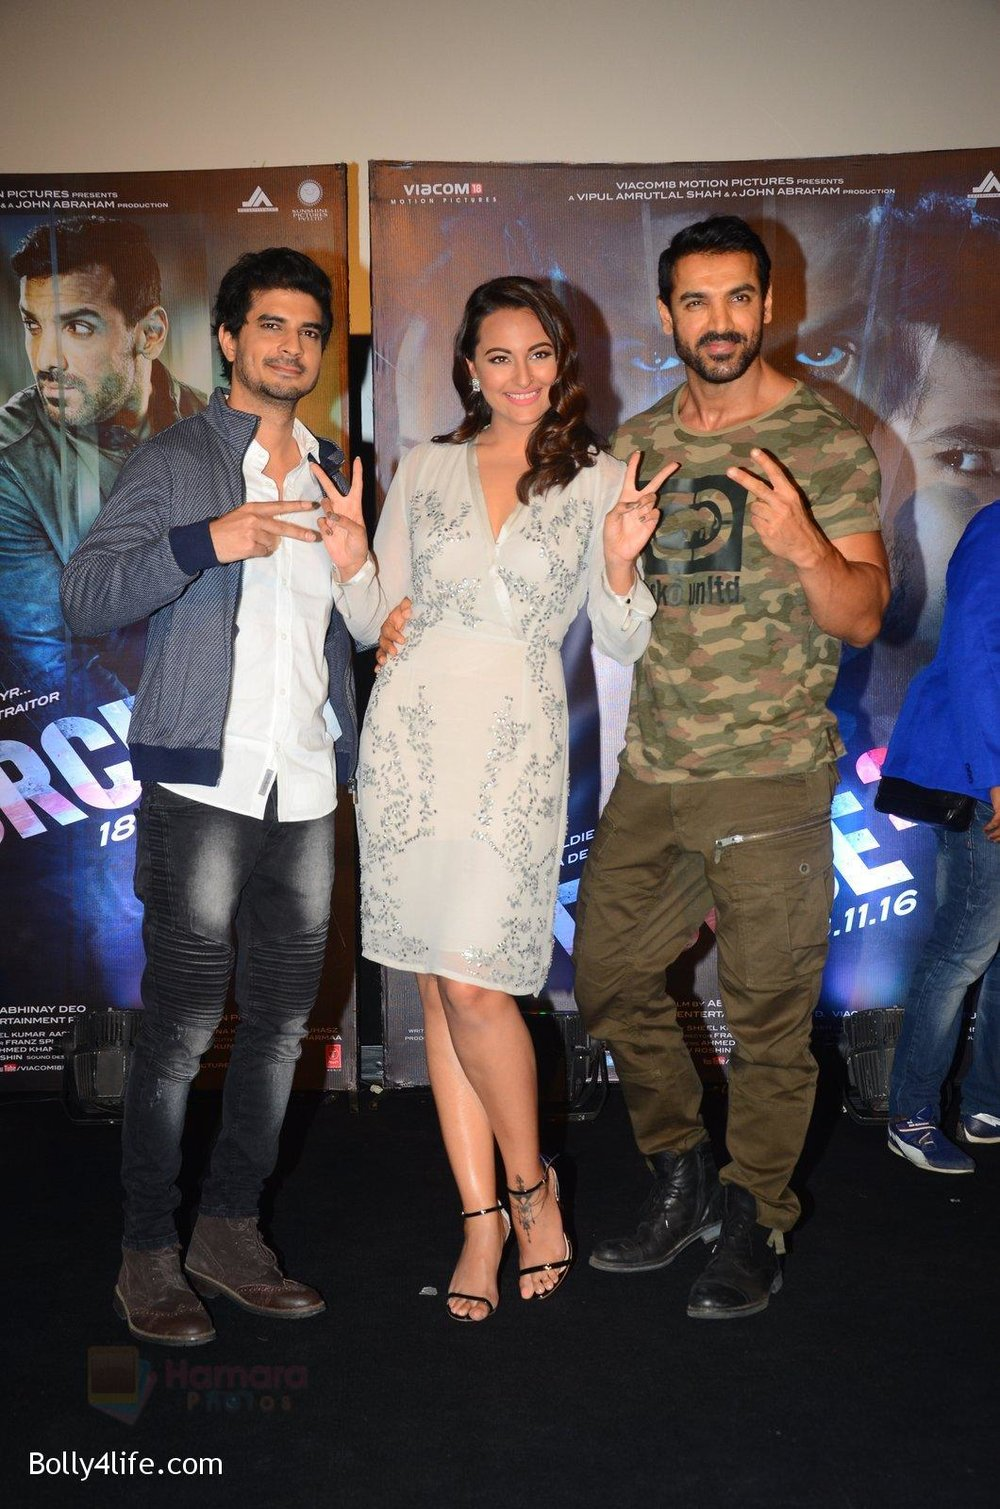 John-Abraham-Sonakshi-Sinha-Tahir-Bhasin-at-Force-2-trailer-launch-in-Mumbai-on-29th-Sept-2016-332.jpg